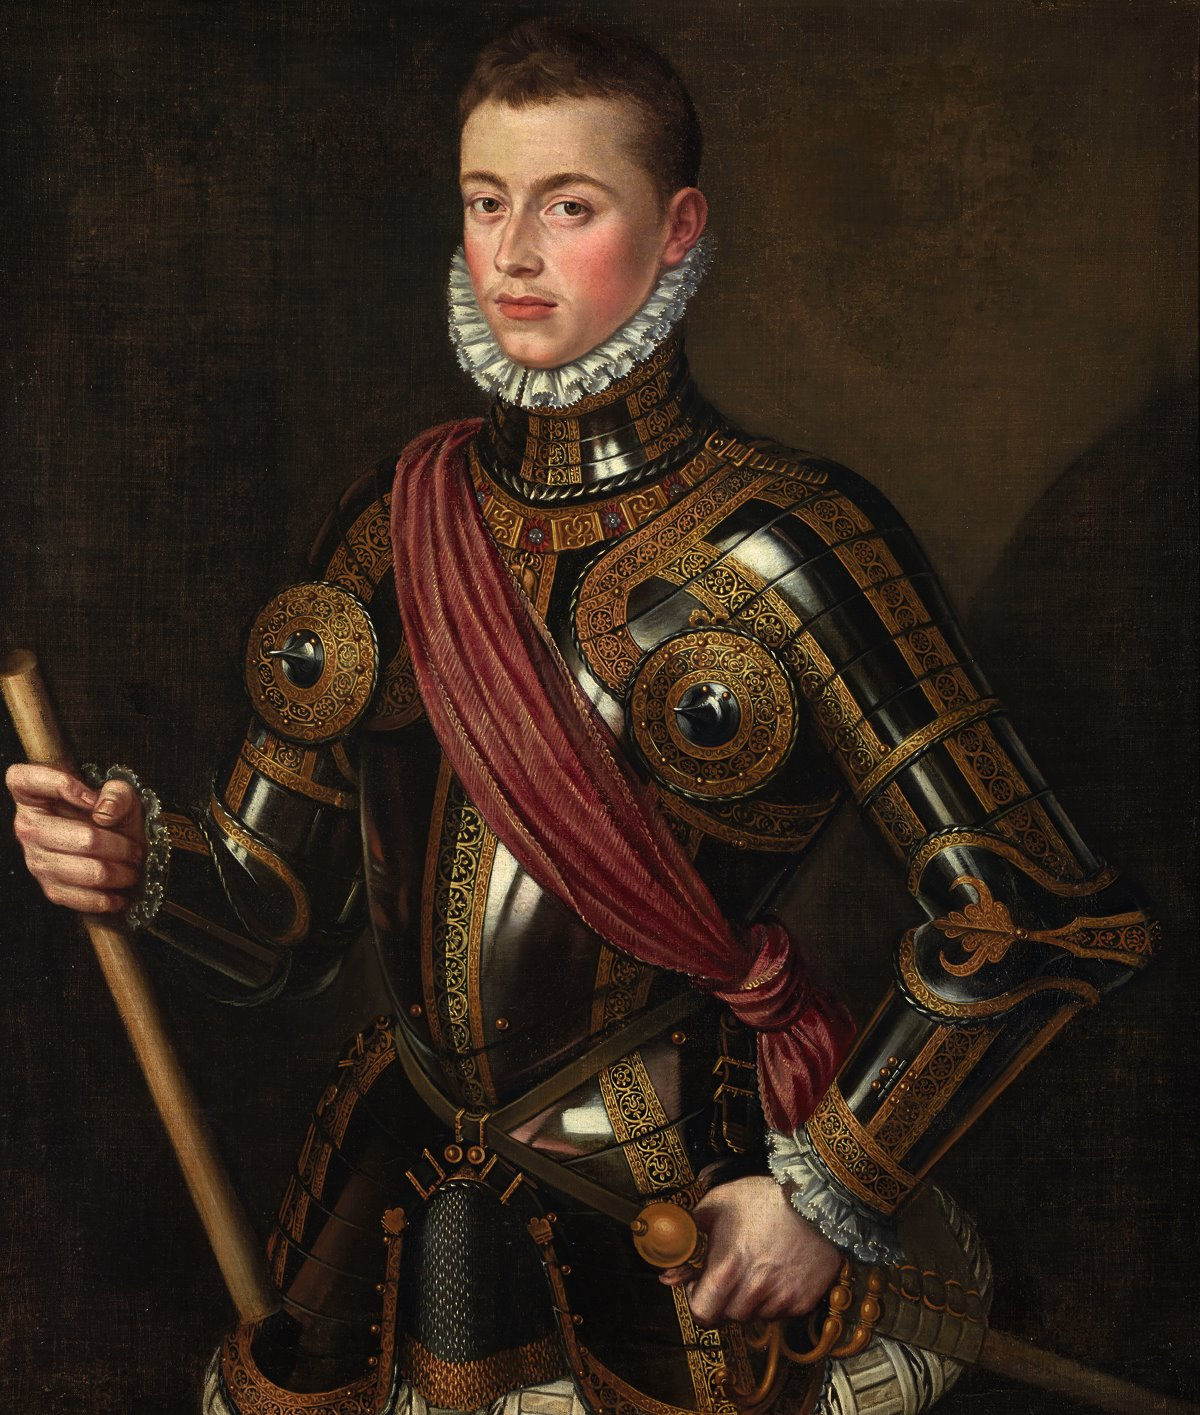 http://upload.wikimedia.org/wikipedia/commons/b/b2/John_of_Austria_portrait.jpg